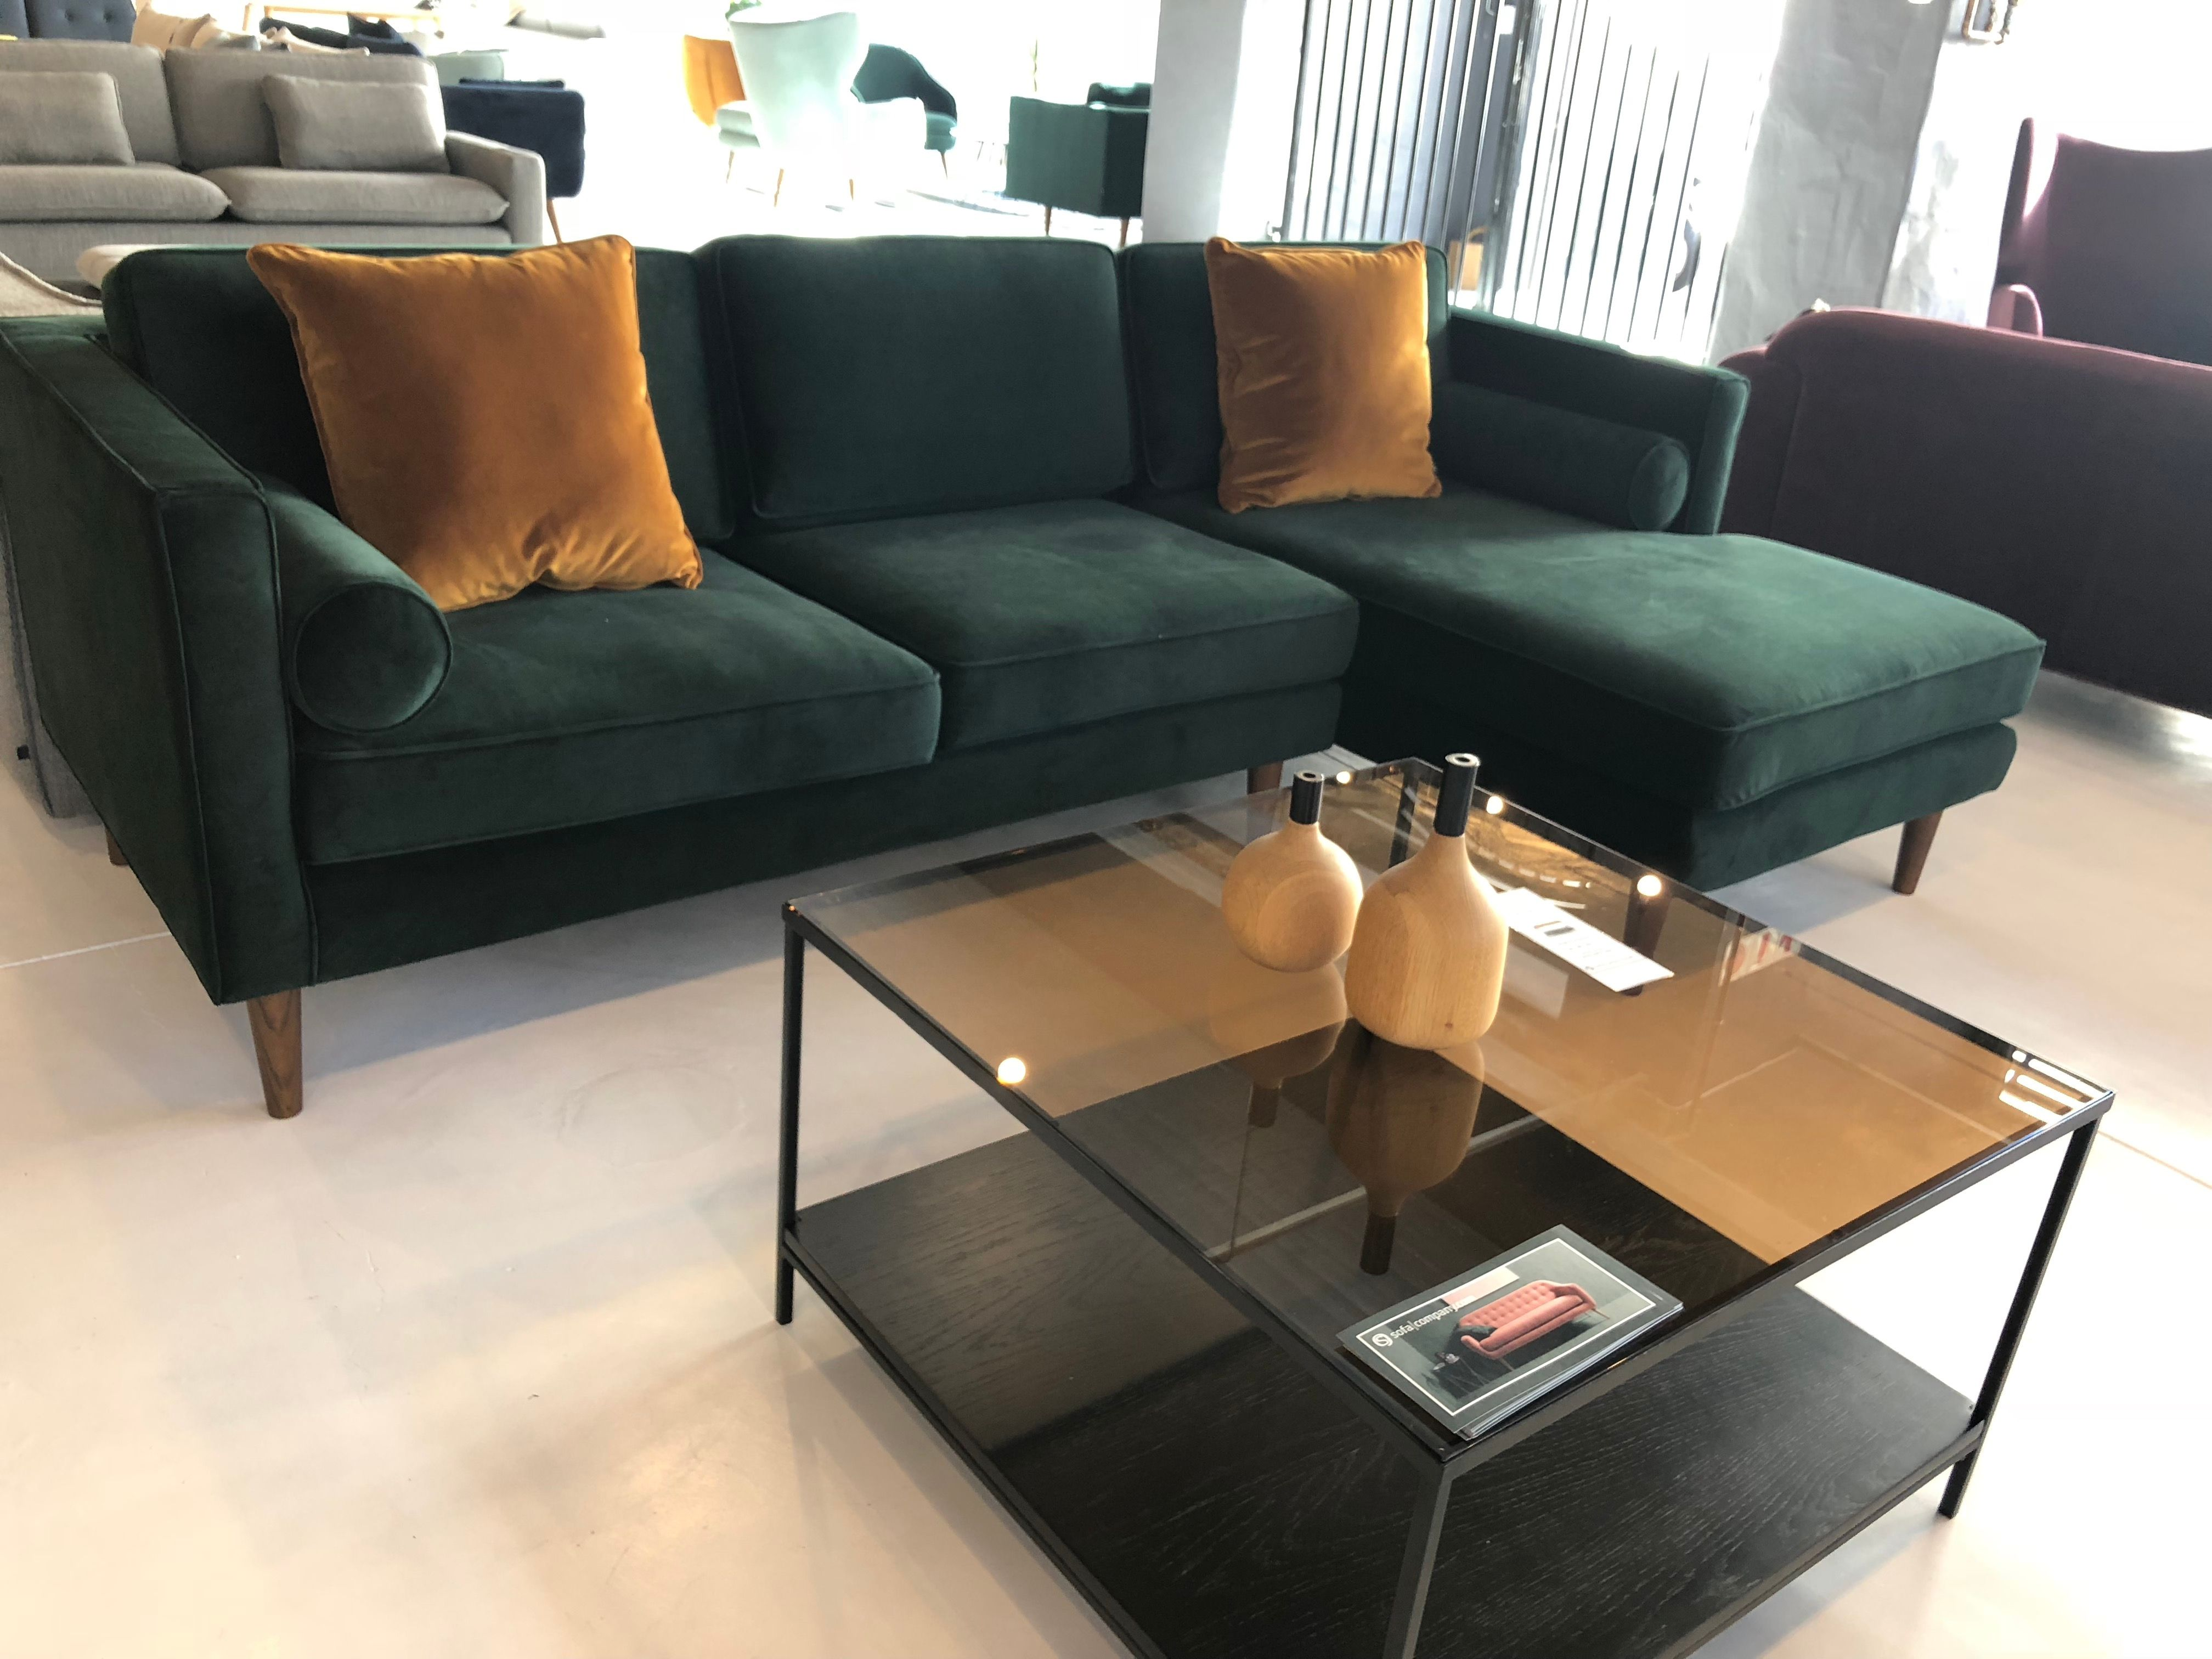 Sofacompany Com Brings You Danish Designed Original Furniture Harper Chaiselong Right Velour Lu Dark Green Living Room Living Room Green Living Room Inspo